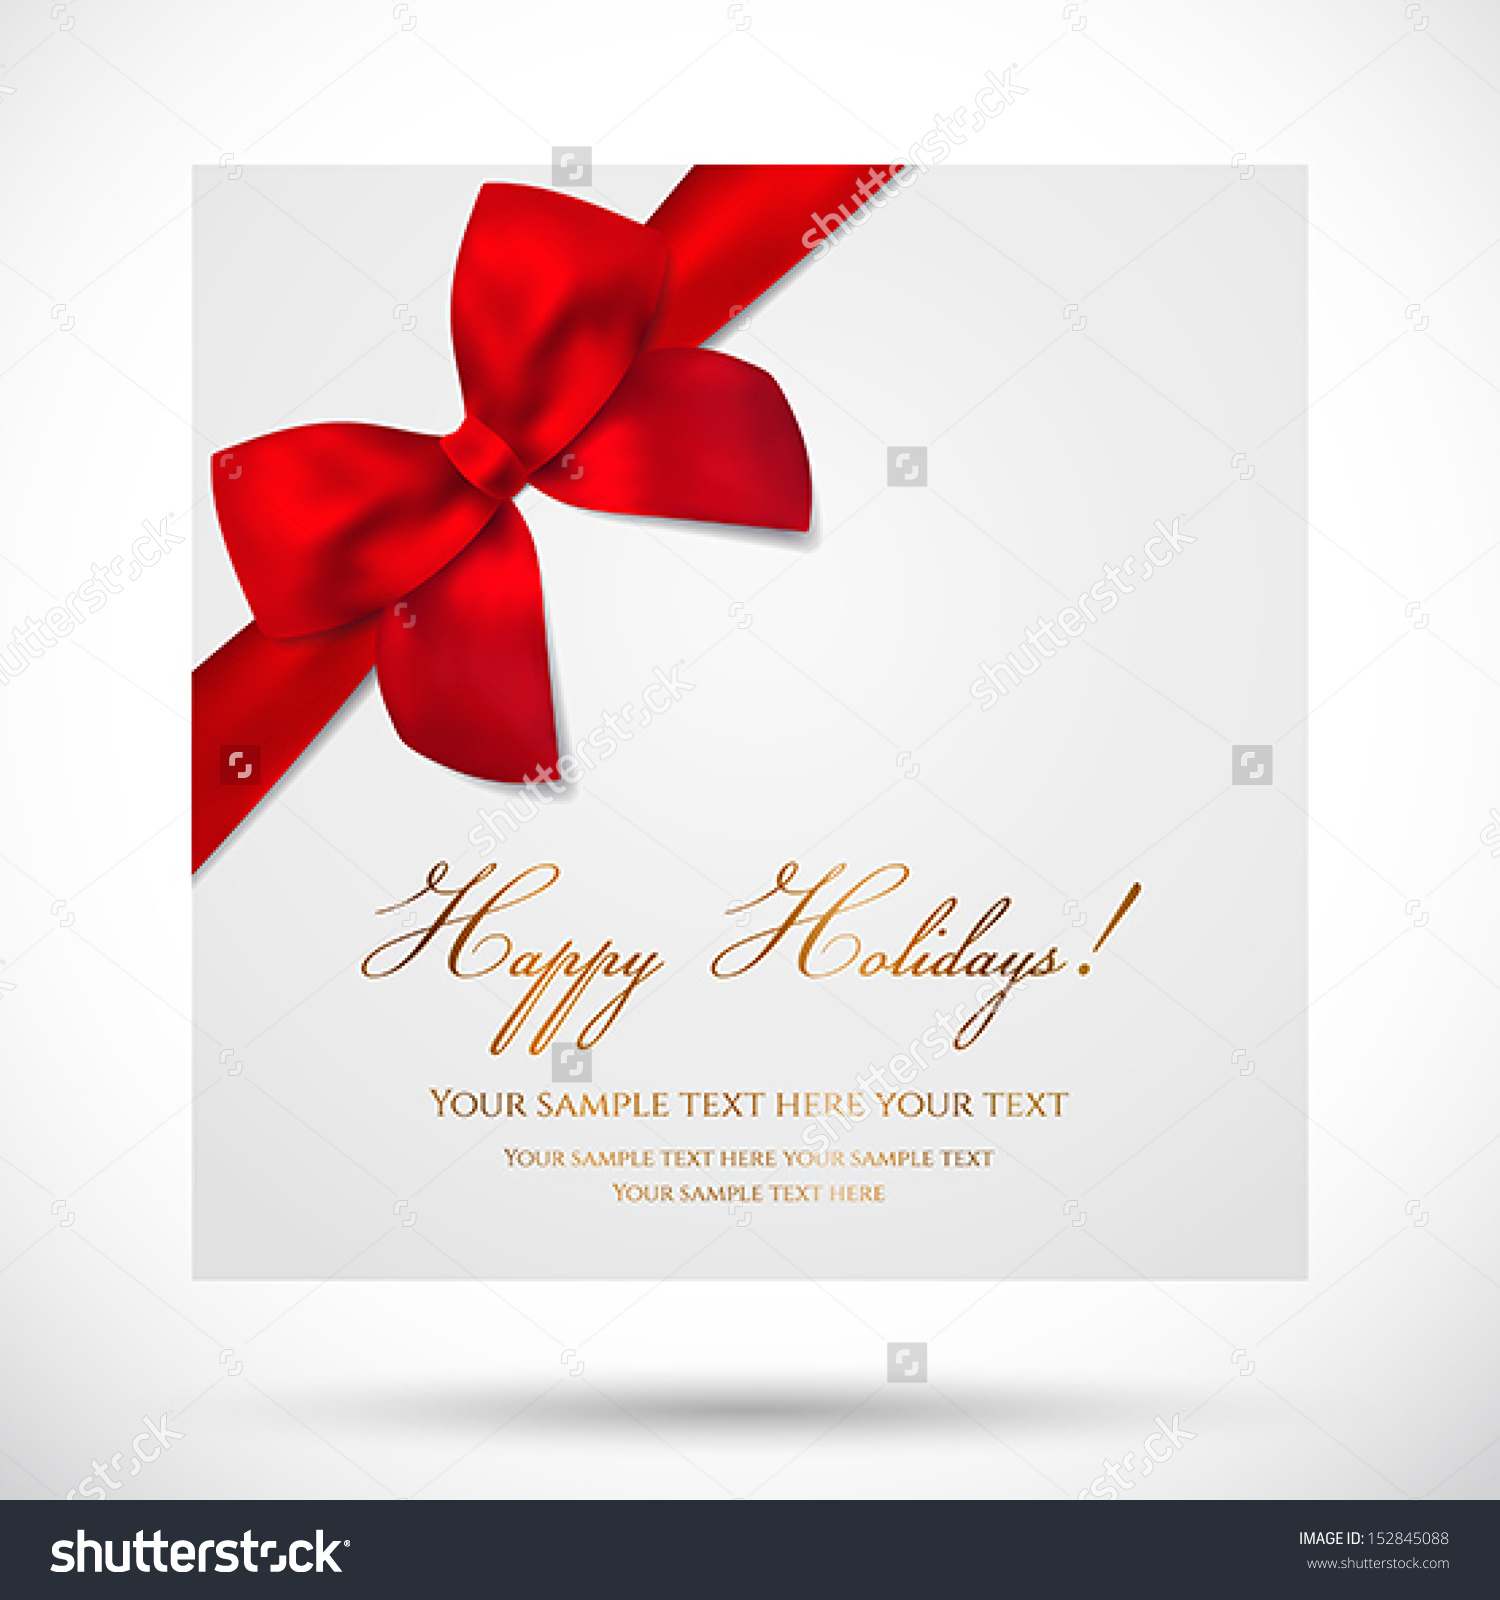 birthday card email templates free ; greeting-card-template-word-unique-holiday-greeting-card-templates-zoro-blaszczak-of-greeting-card-template-word